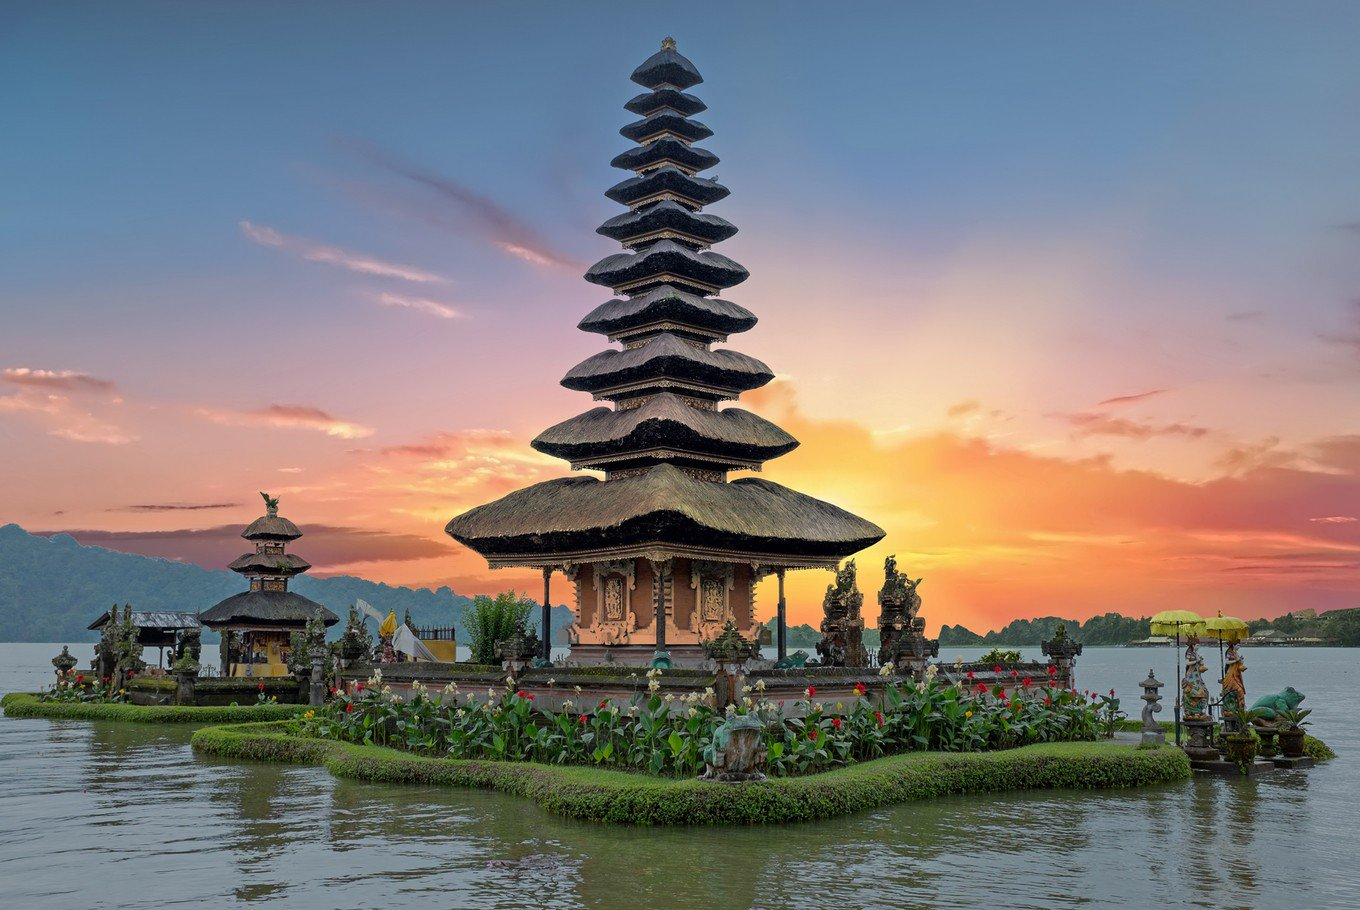 Bali 6 Nights / 7 Days